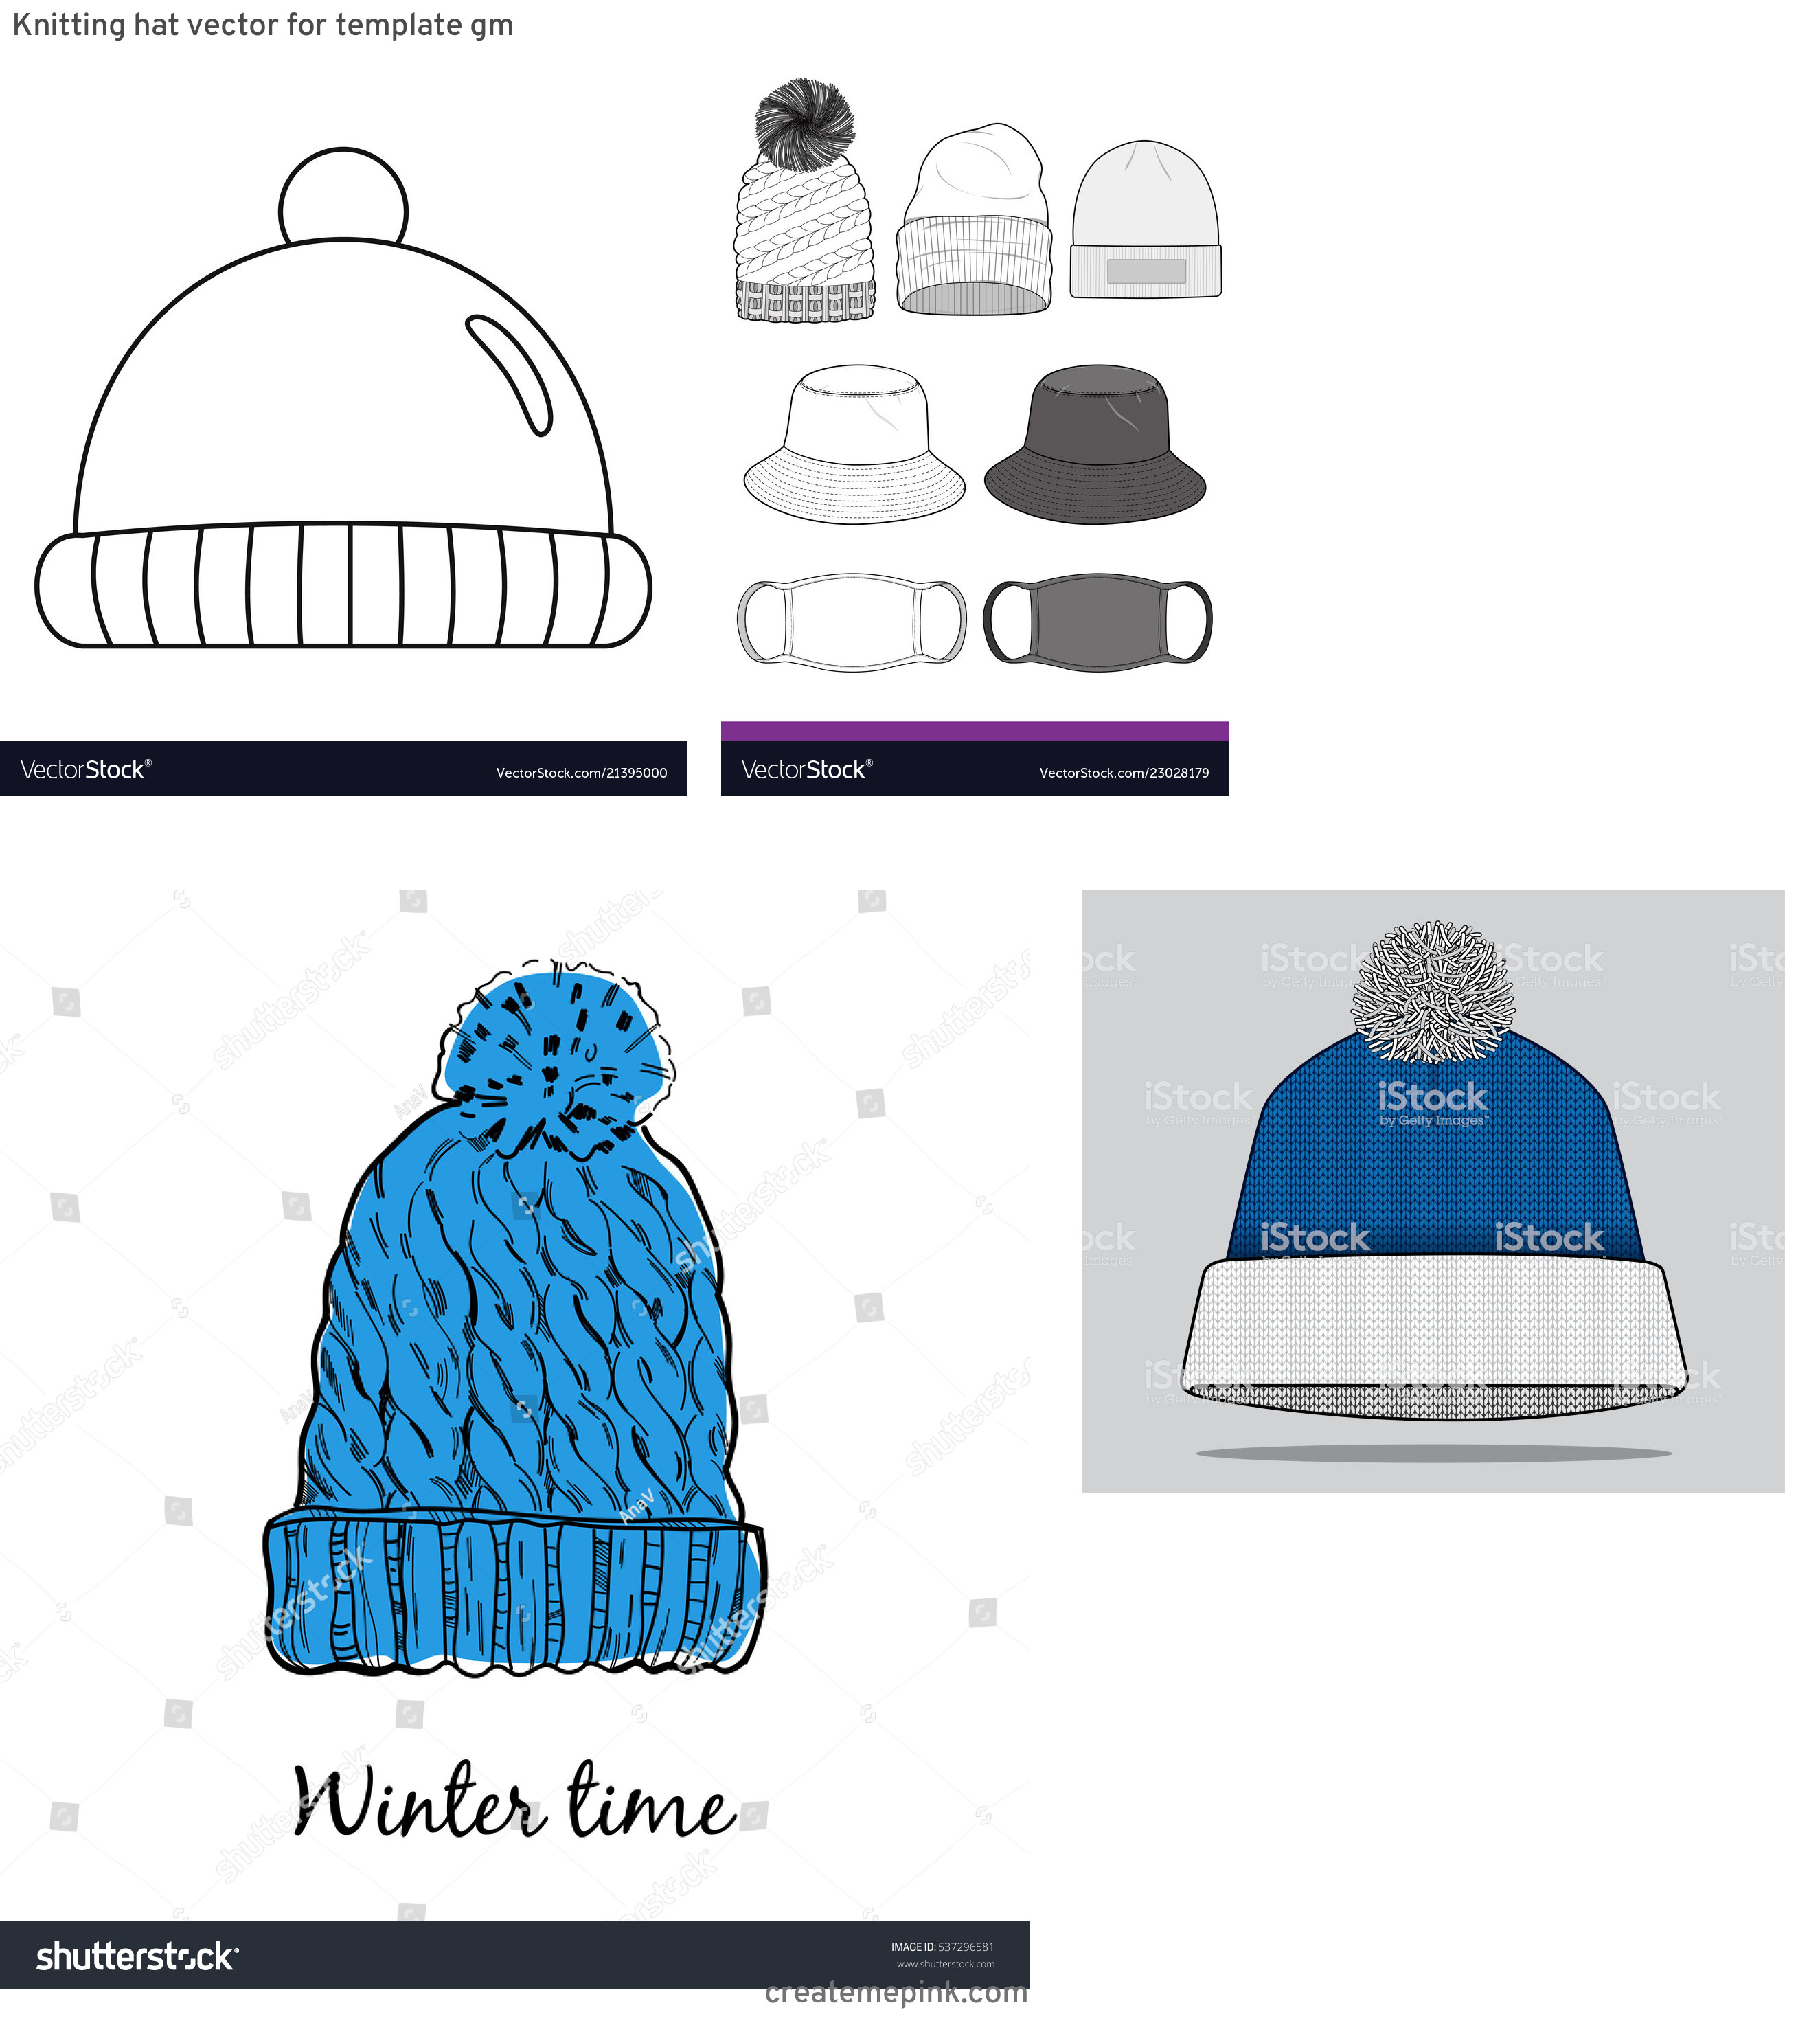 Winter Hat Vectors Templates: Knitting Hat Vector For Template Gm